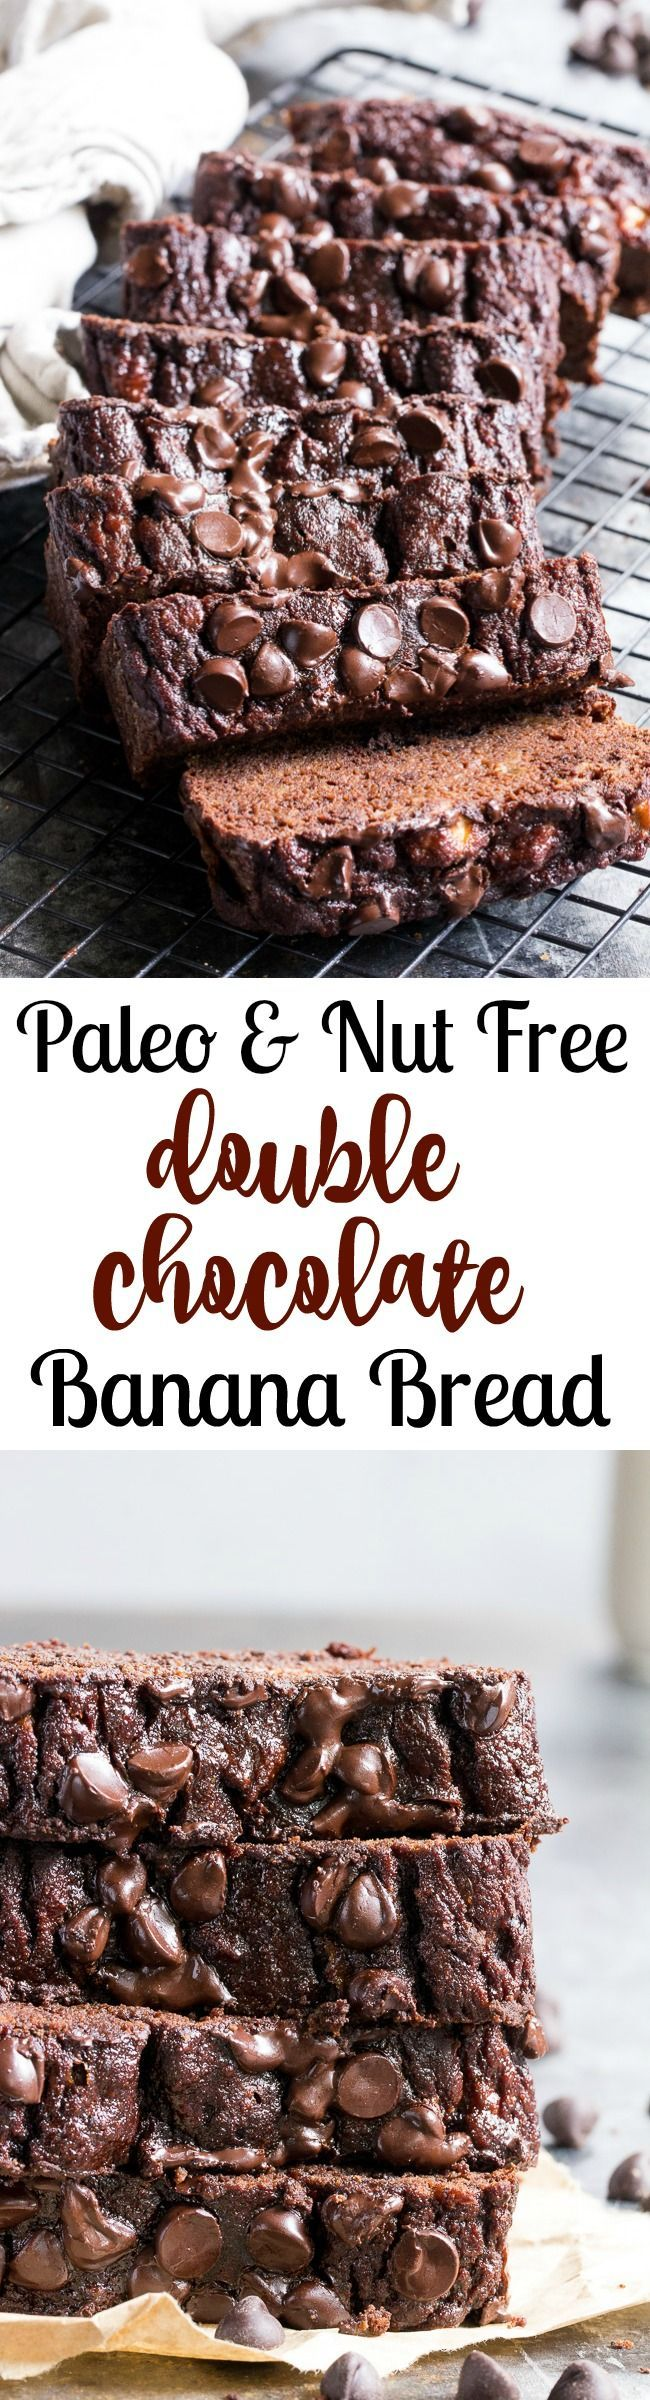 This moist and tender double chocolate banana bread tastes as good as chocolate cake, but it's so much healthier! Made with coconut flour and raw cacao powder, it's paleo, nut free, gluten-free, dairy-free, family and kid approved!  Great for snacks, breakfast or a healthy dessert!